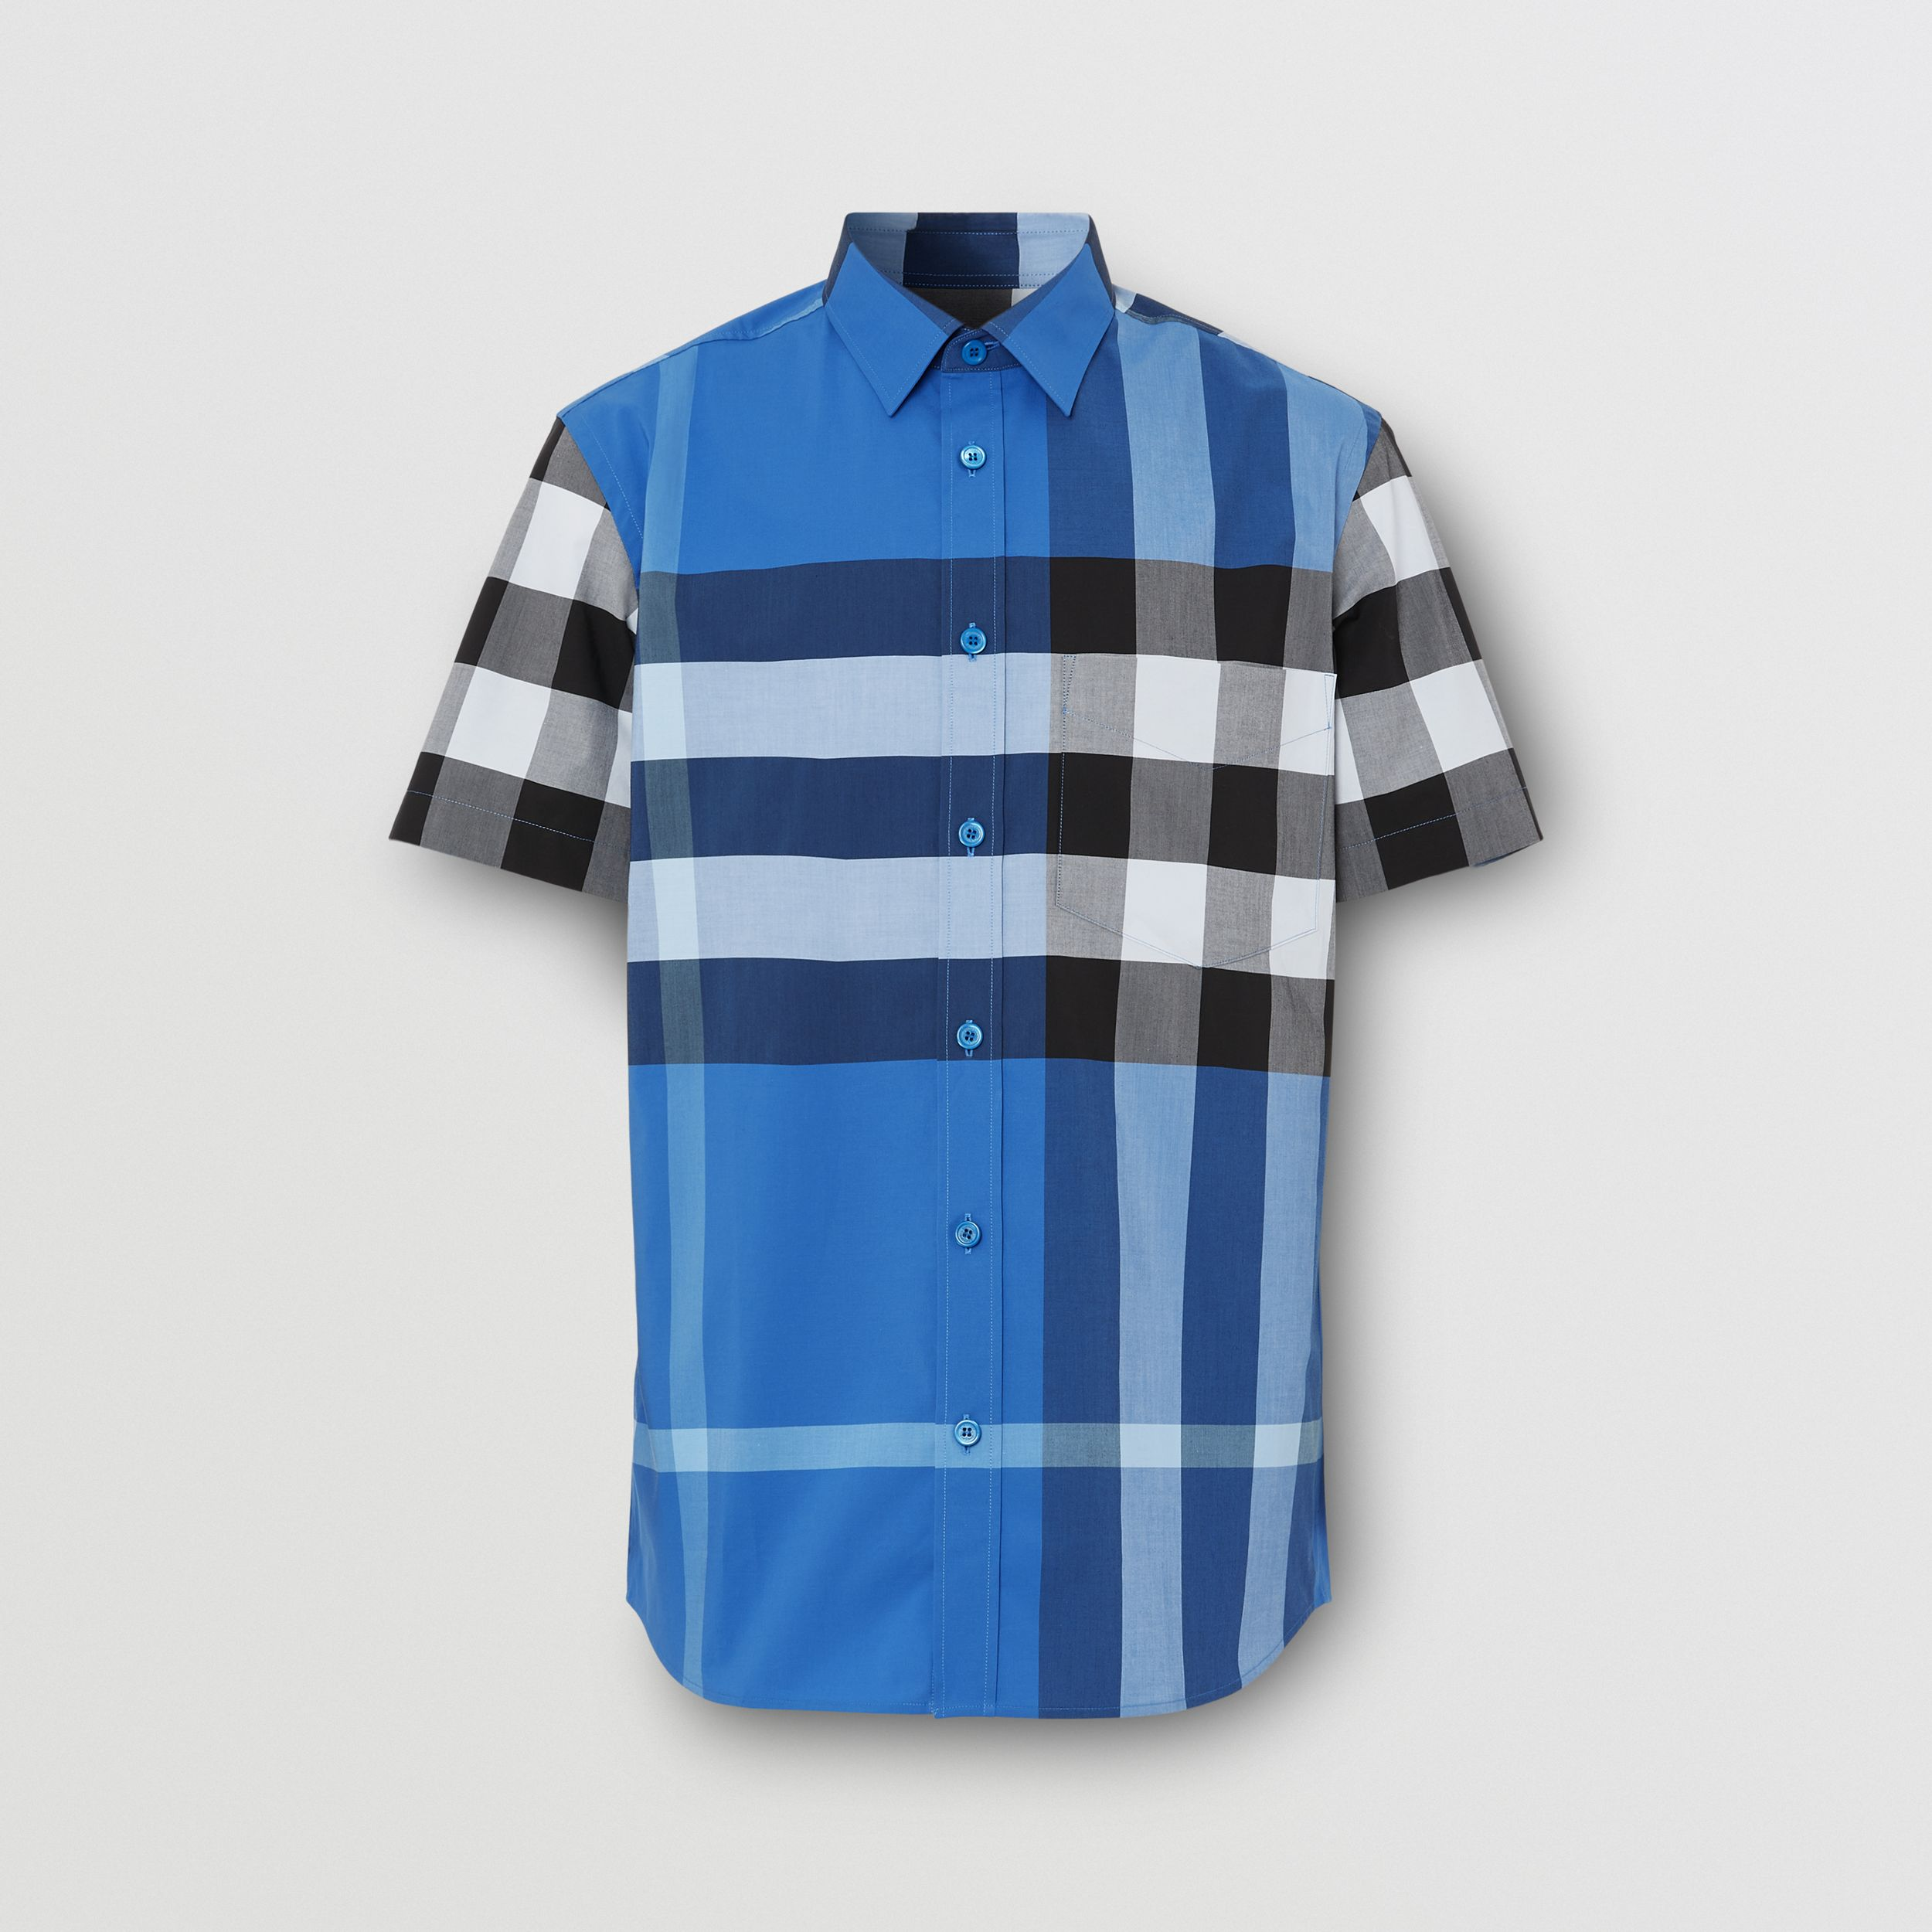 Short-sleeve Check Stretch Cotton Poplin Shirt in Dark Cerulean Blue - Men | Burberry Singapore - 4